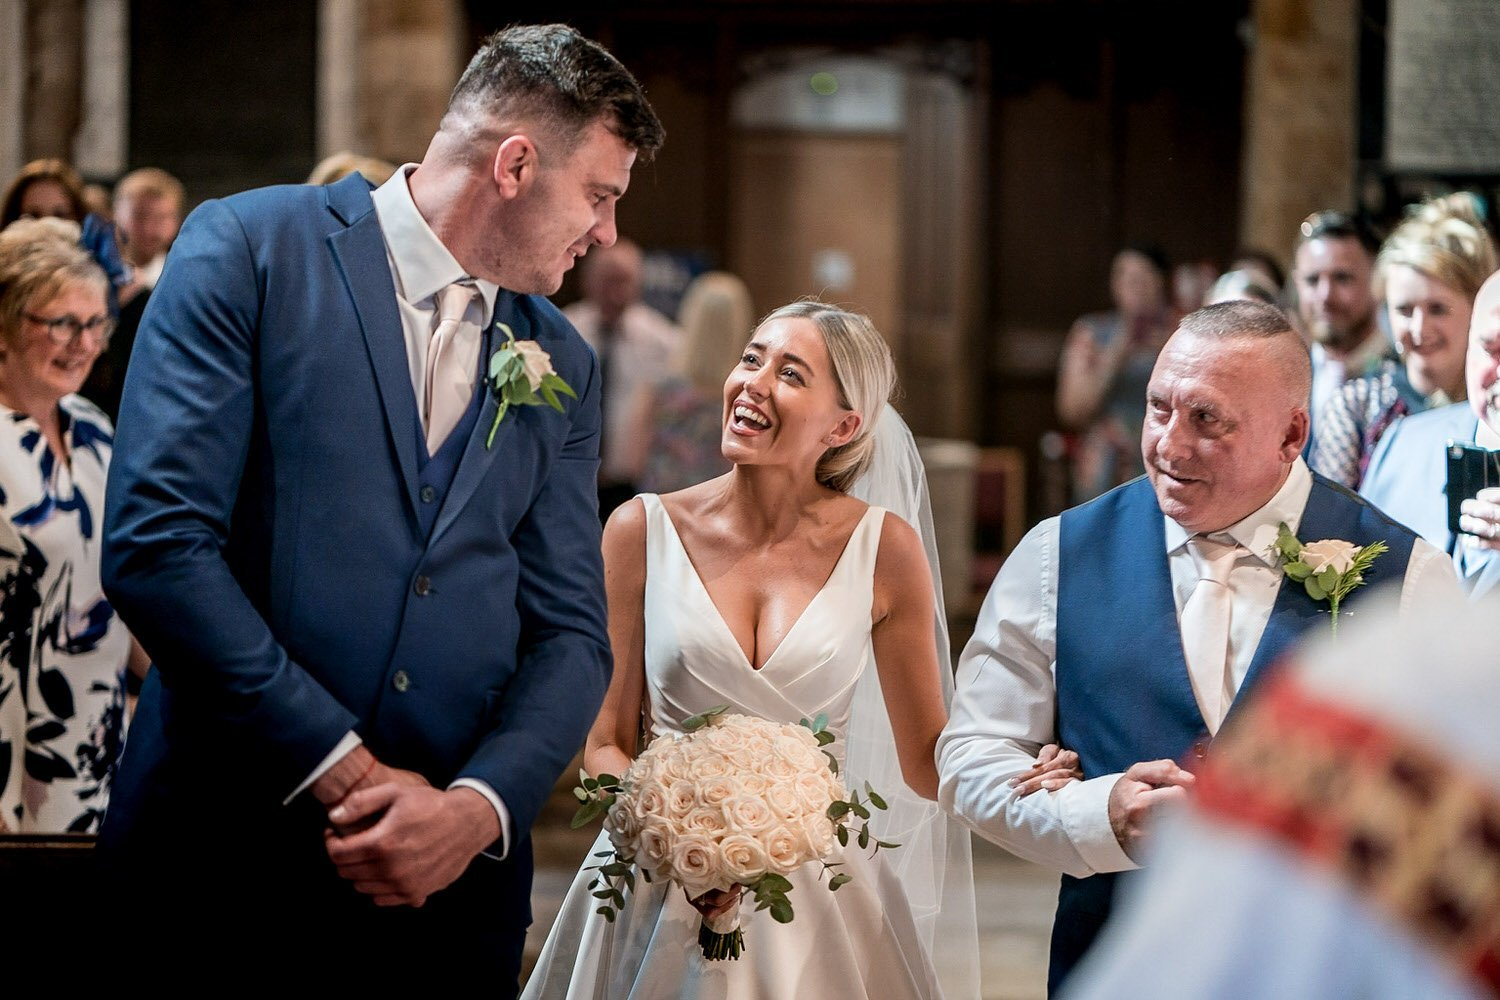 Great Bowden Parish Church Lockwood Weddings Photography bride arrives at the foot of the aisle and sees her groom husband for the first time, broad smiles and laughter father proud